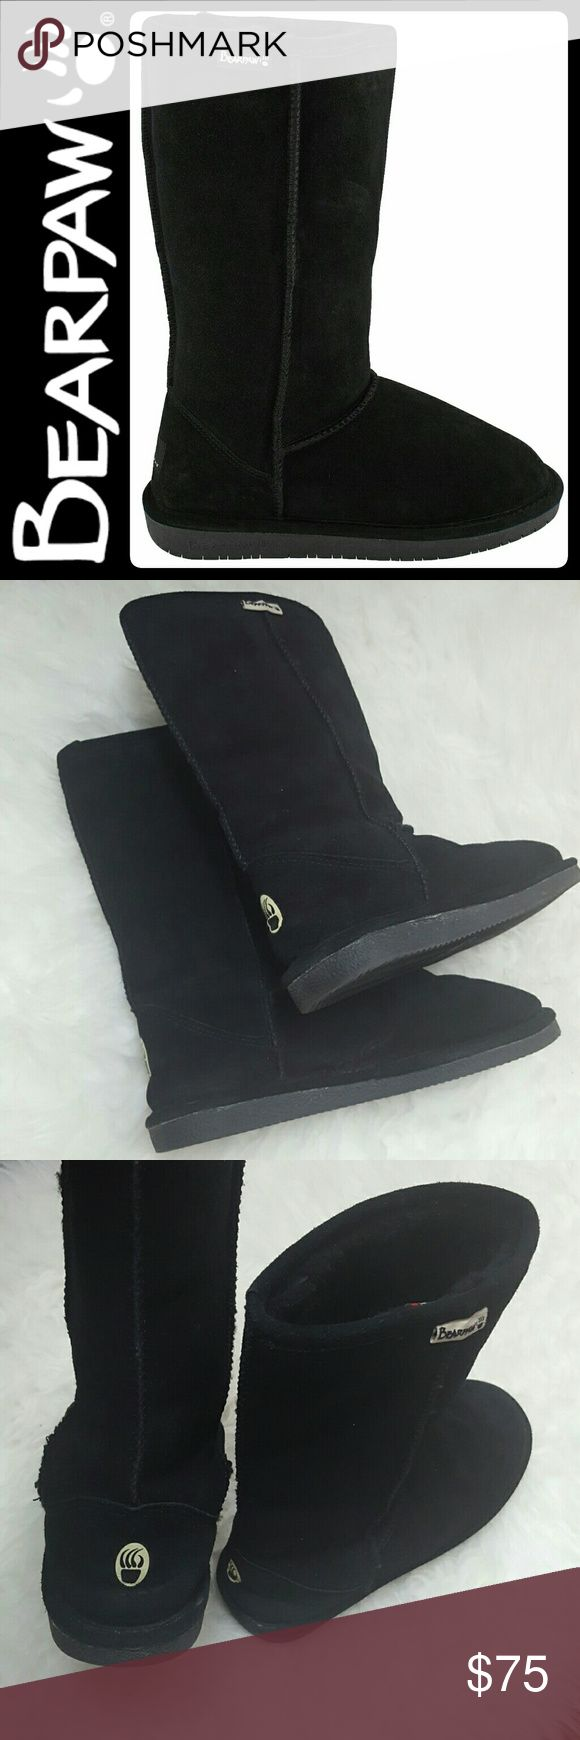 BearPaw Suede Sheepskin Black Boots BearPaw Signature Brand in Classic Black Suede Upper Tall Boots! Features Its Famous Genuine Sheepskin Lining That Keeps Your Feet Warm and Snug All Throughout! Rubber Outsole for Added Grip, Size 8, Used Once,  Like New Condition! Perfect Pair to Compliment Any Wardrobe! BearPaw Shoes Winter & Rain Boots